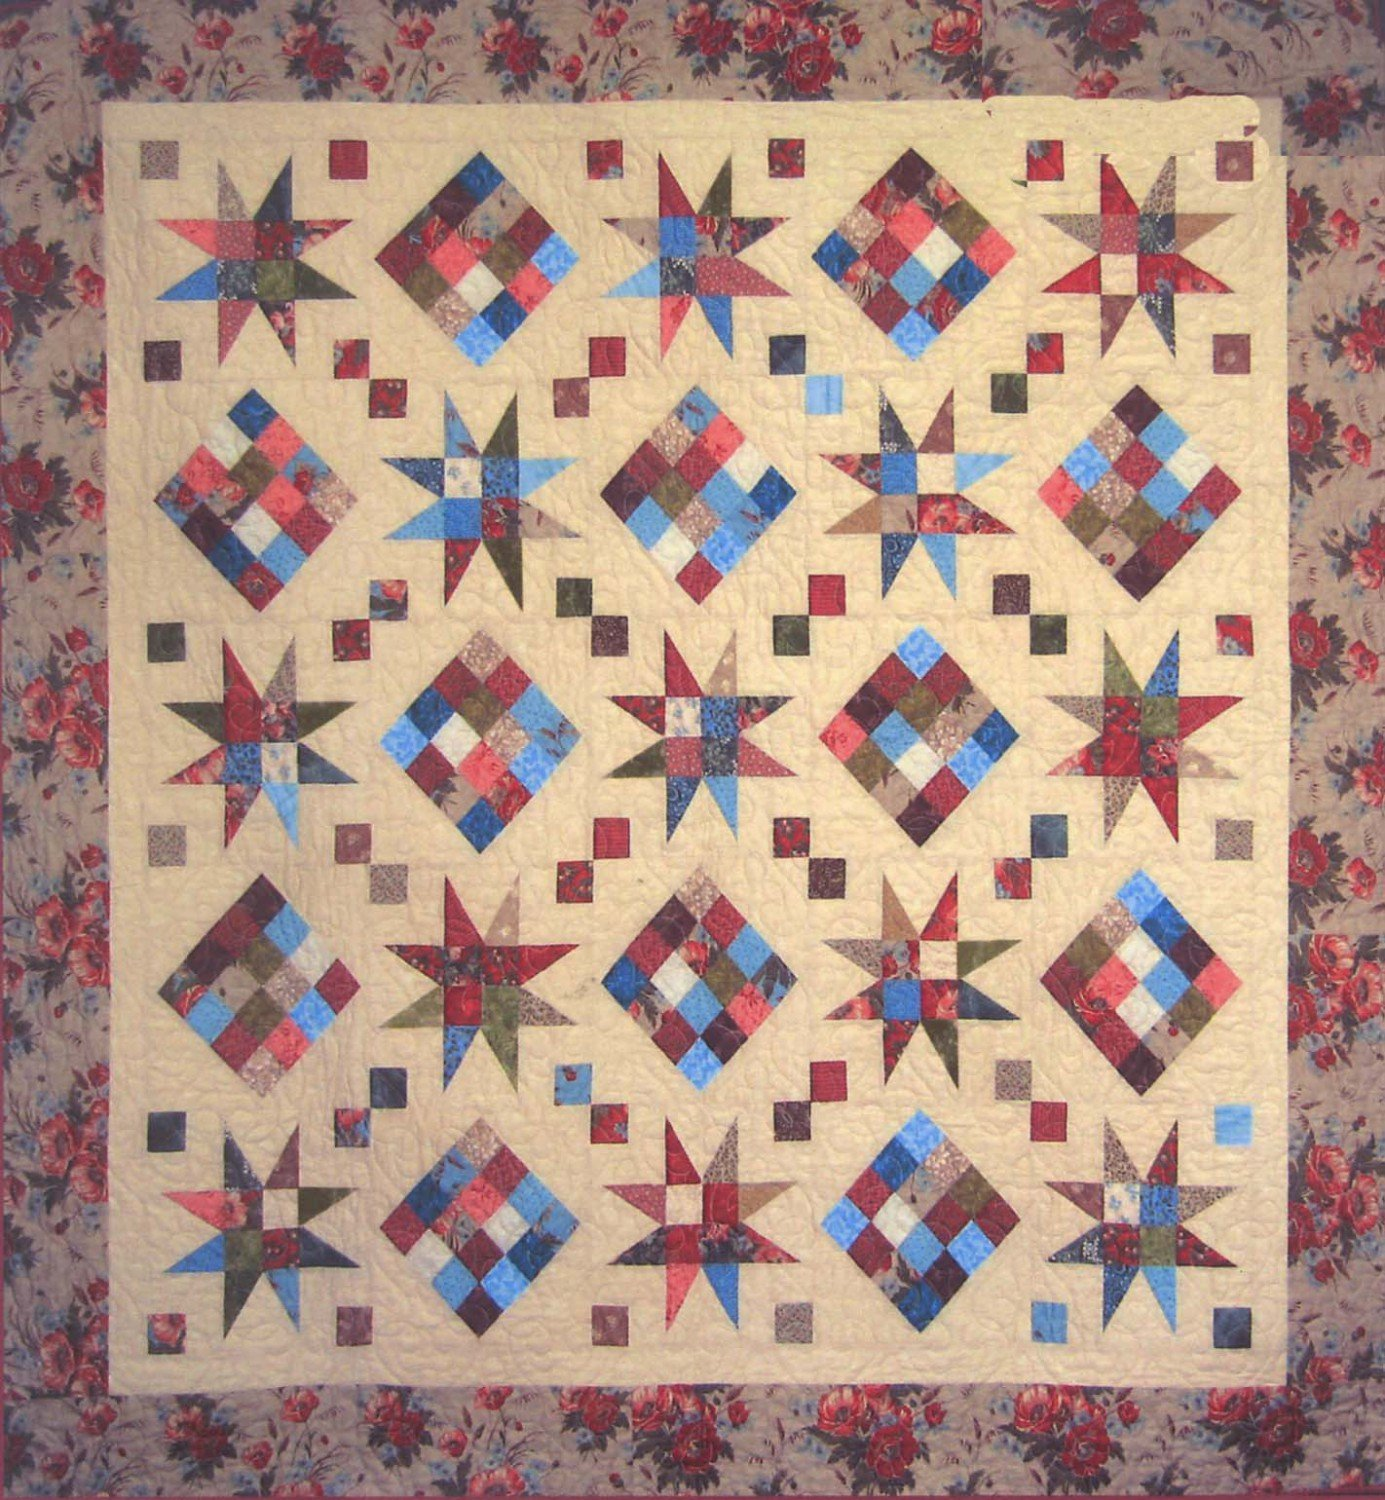 Cozy Quilt Designs - Rising Star Pattern SRR-RS2